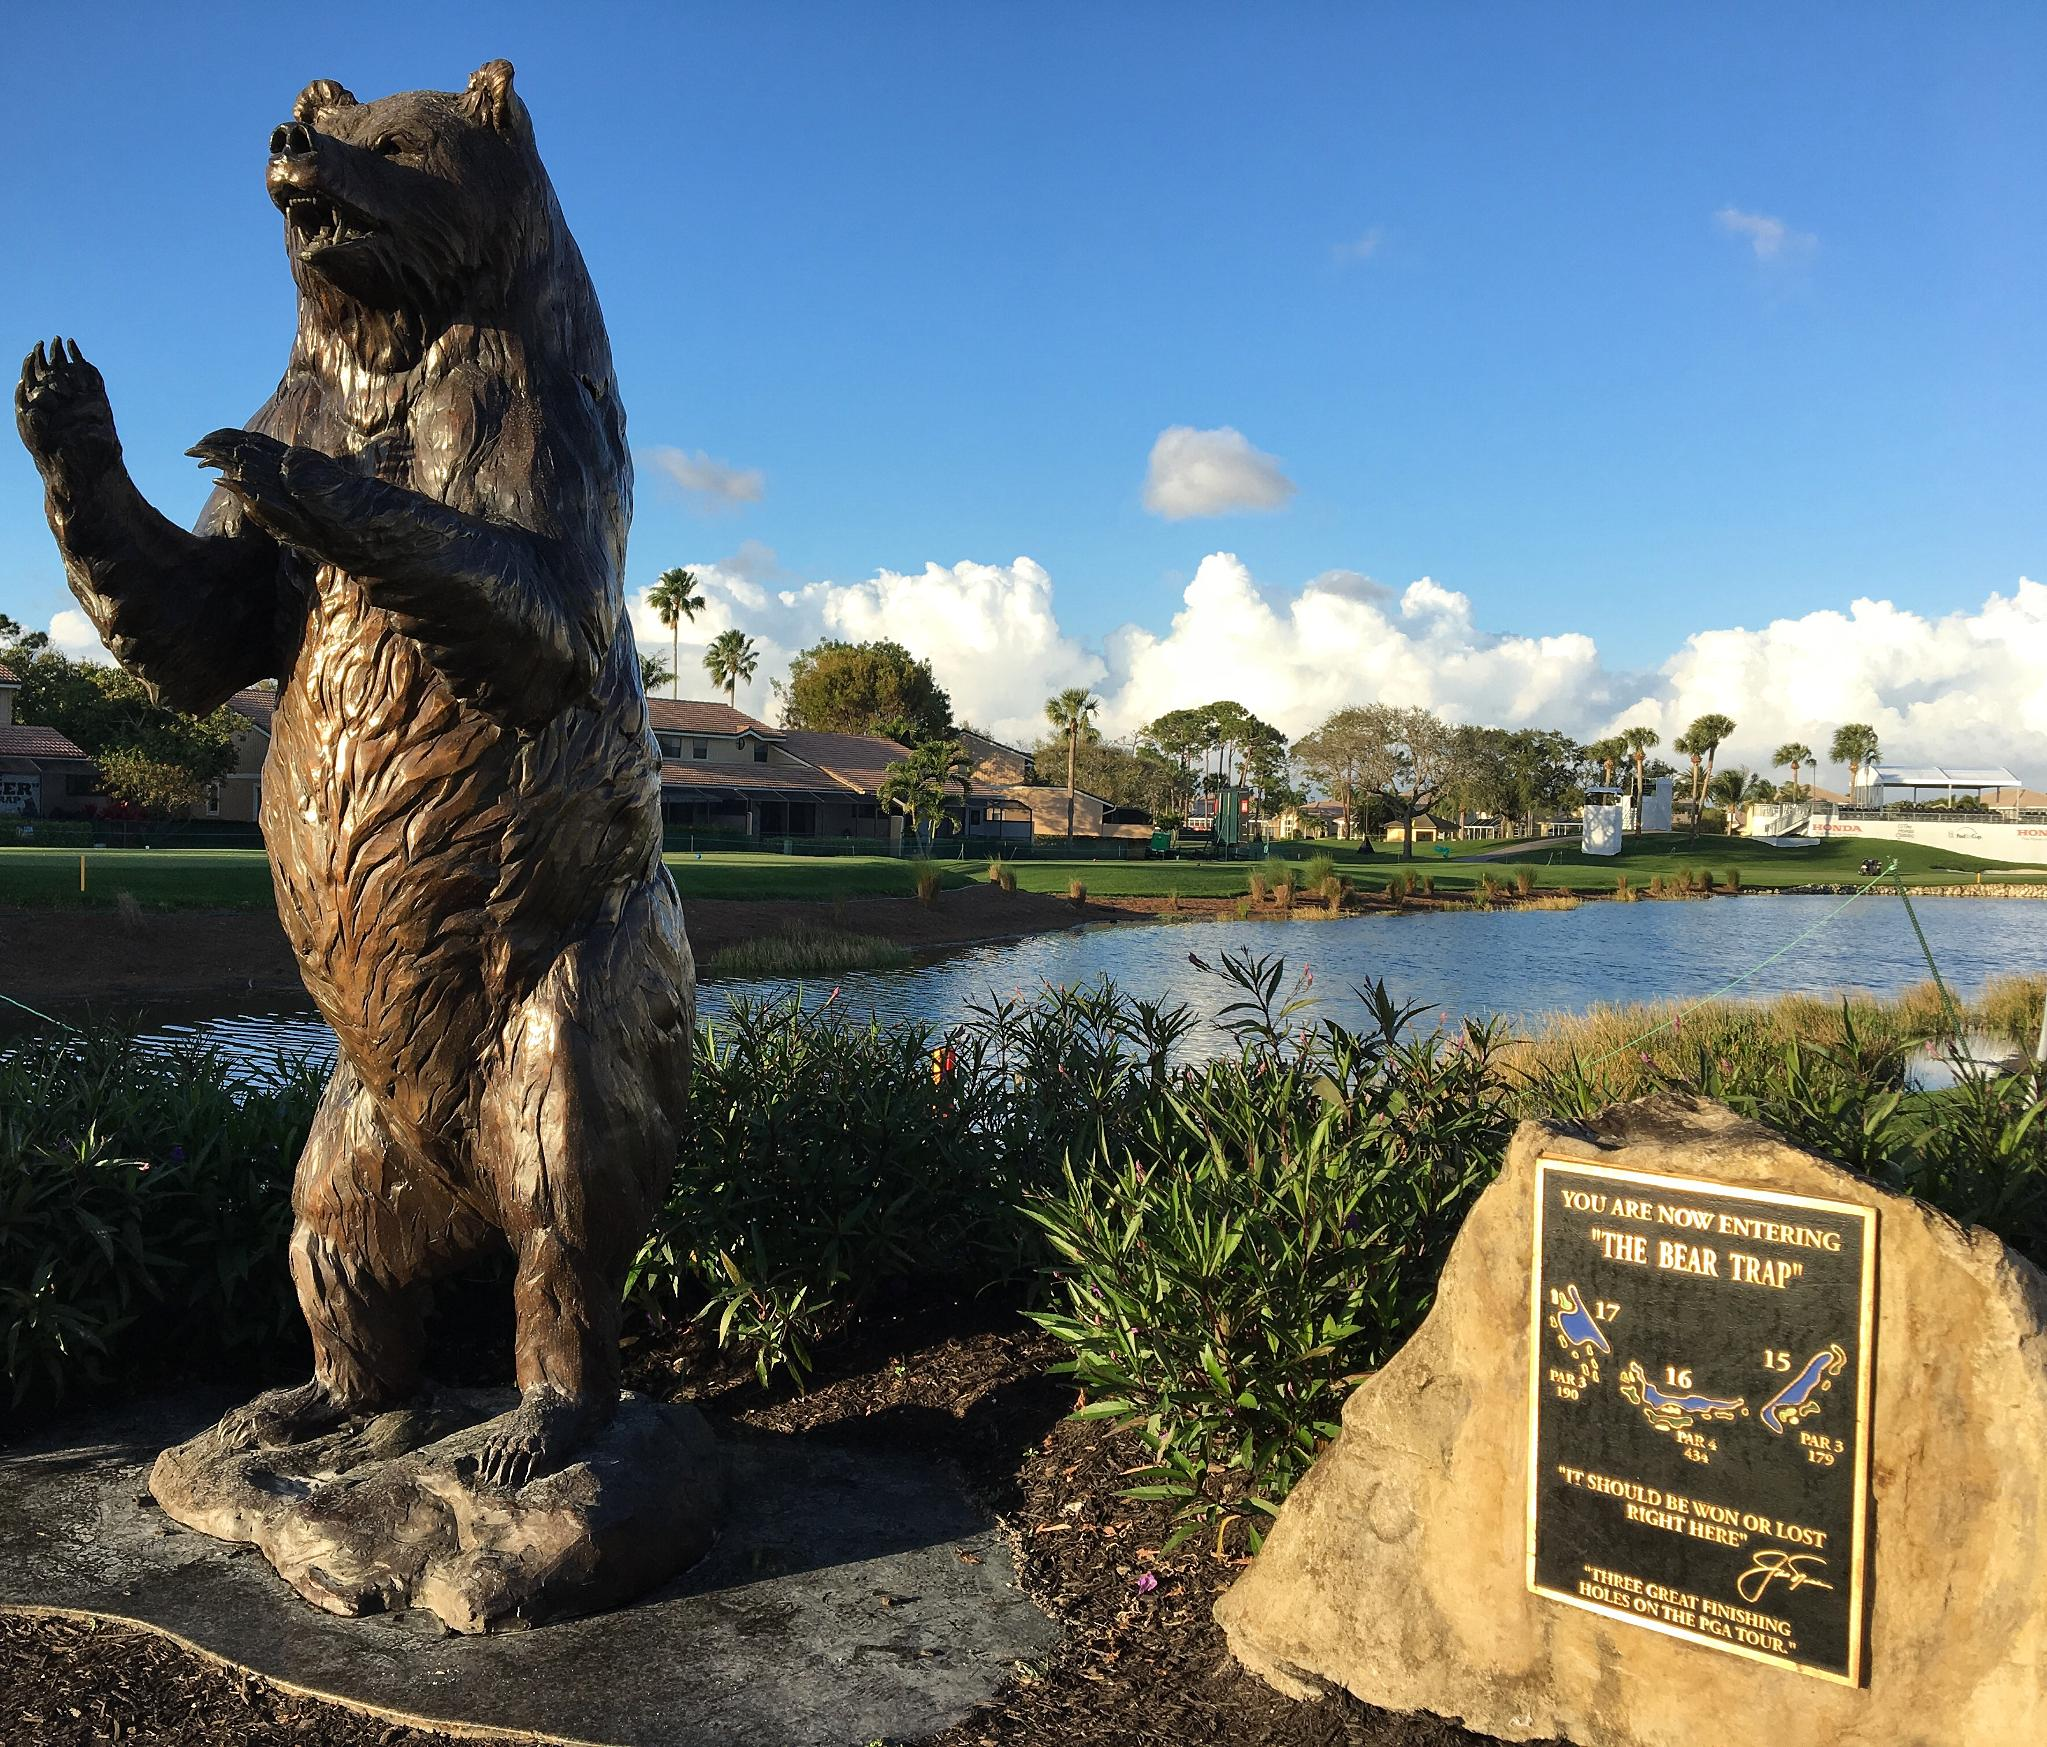 'I fear those holes.'  Players return to the Bear Trap this week @TheHondaClassic. https://t.co/bGlA1jugYO https://t.co/0wZpX8LcuW